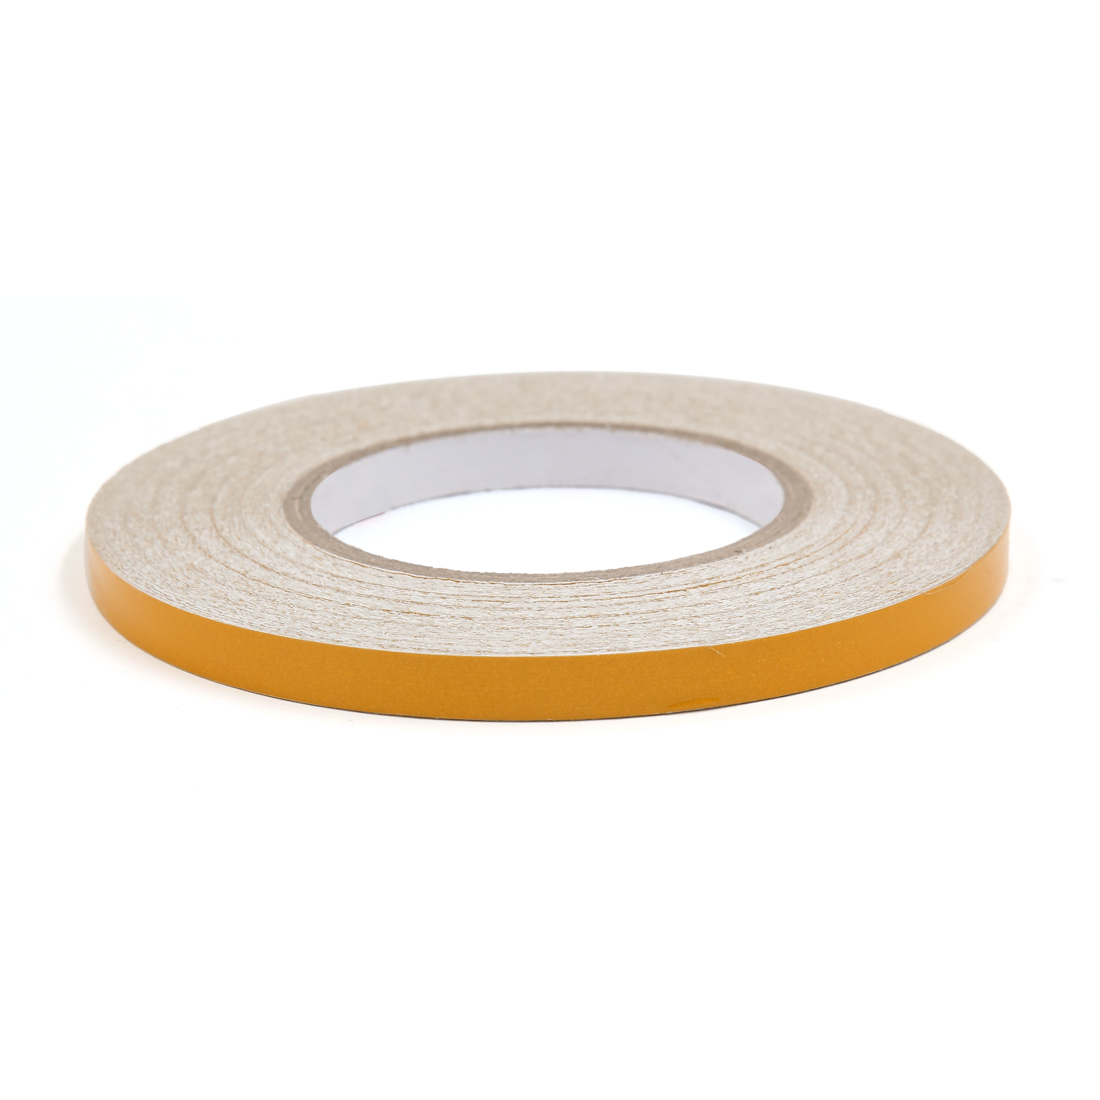 Car Vehicle Vinyl Yellow Reflective Adhesive Sticker Decoration Stripe Tape